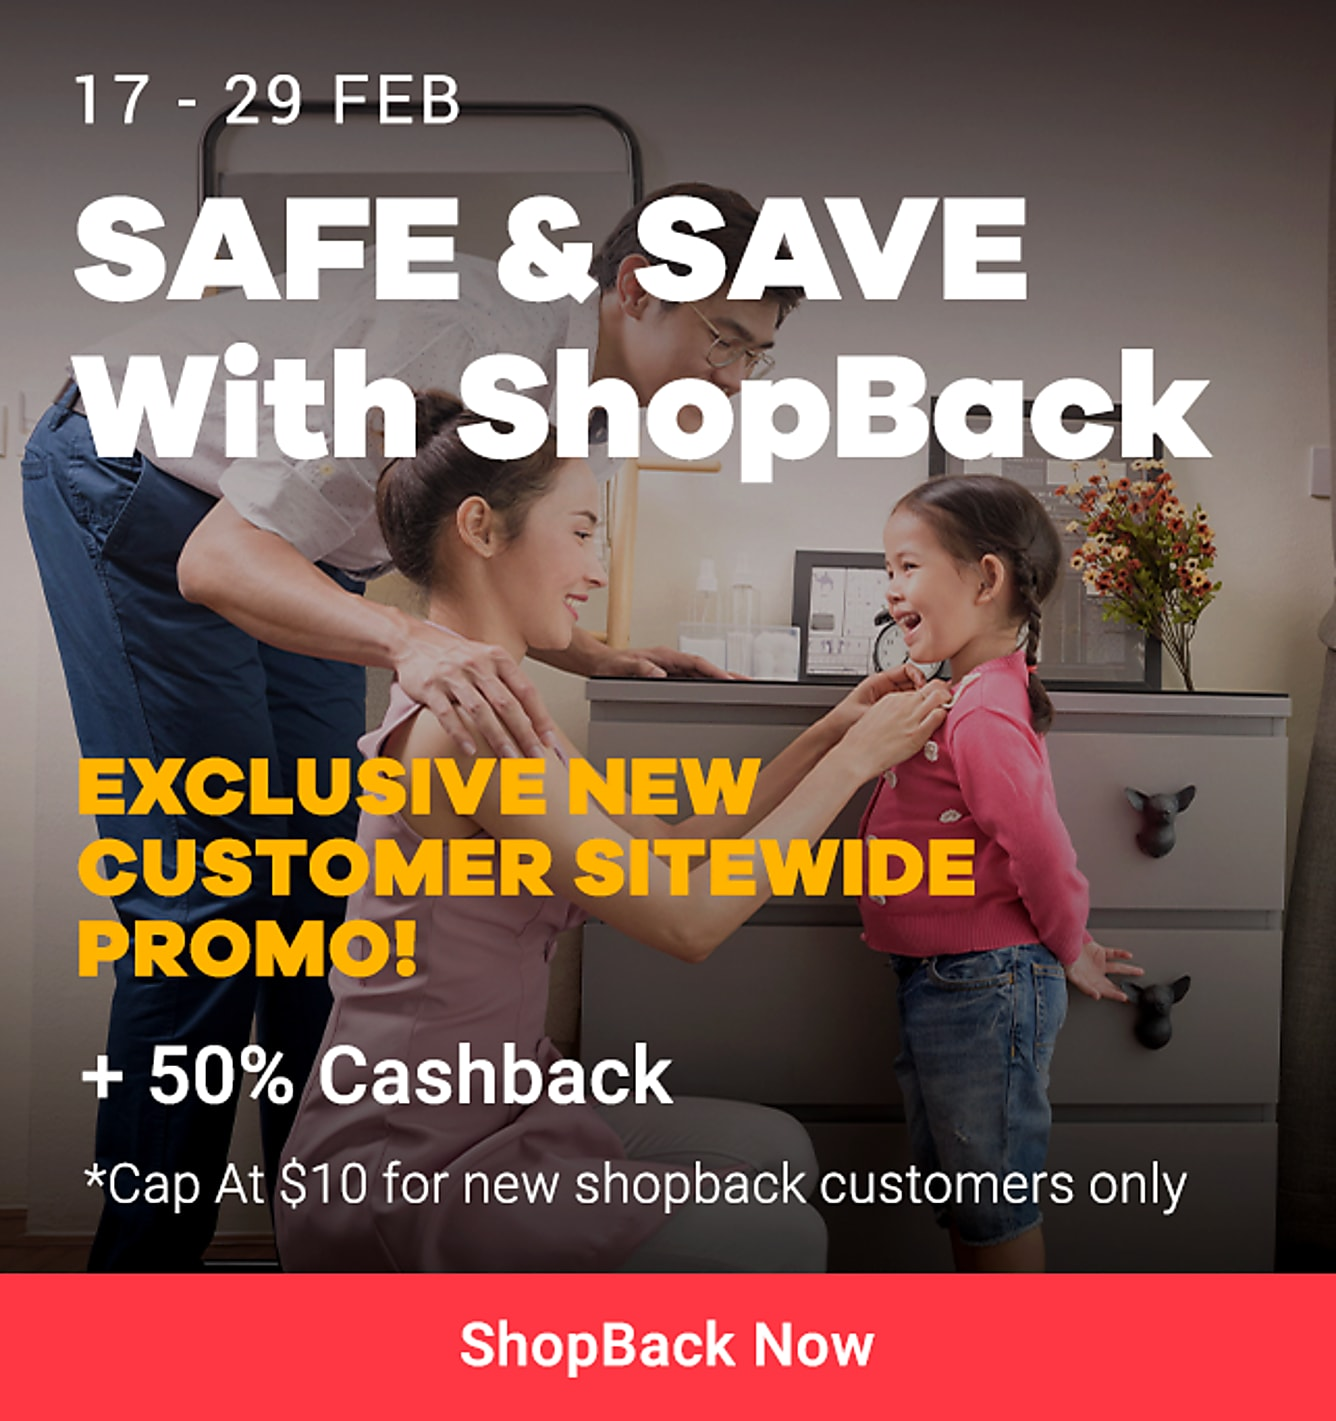 precaution new customer 50% cashback